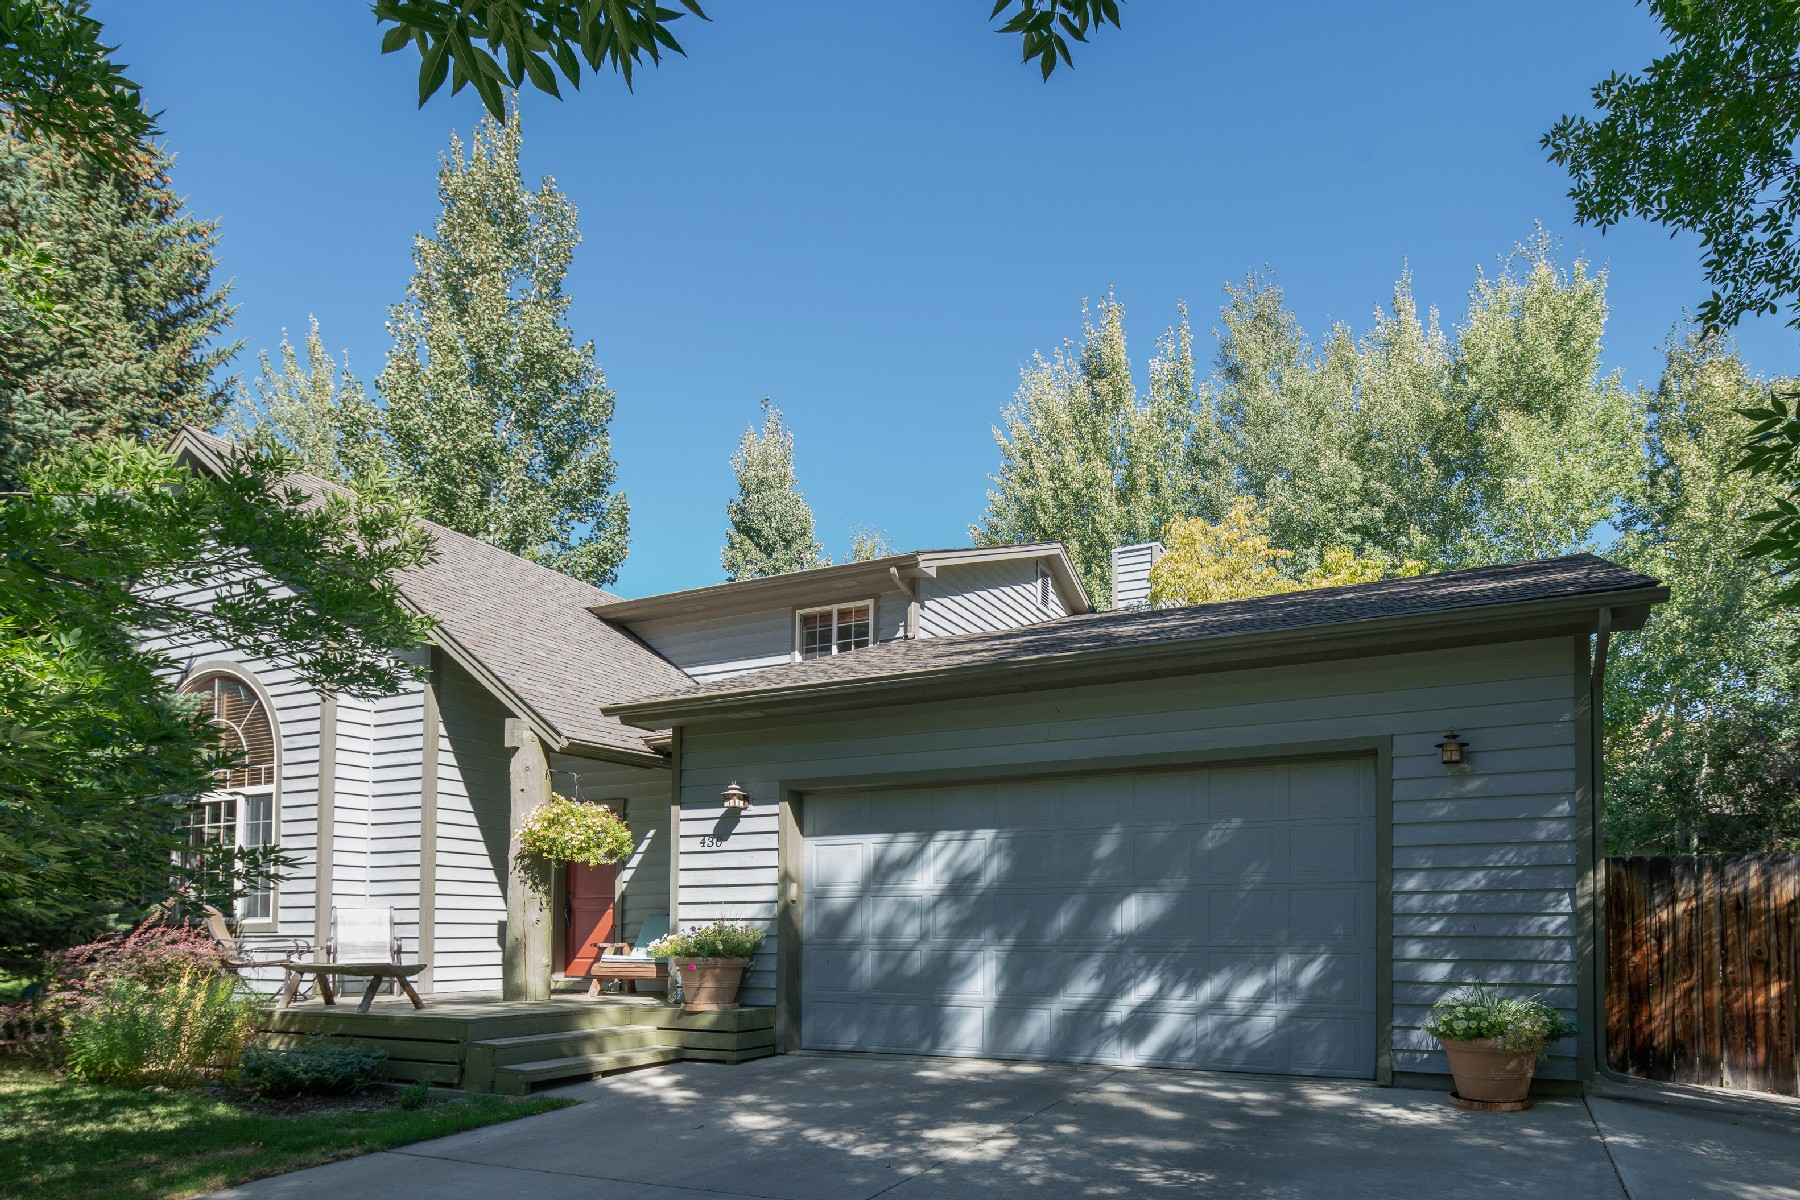 Single Family Home for Active at One Of The Best Streets In Hailey 430 Whitetail Dr Hailey, Idaho 83333 United States